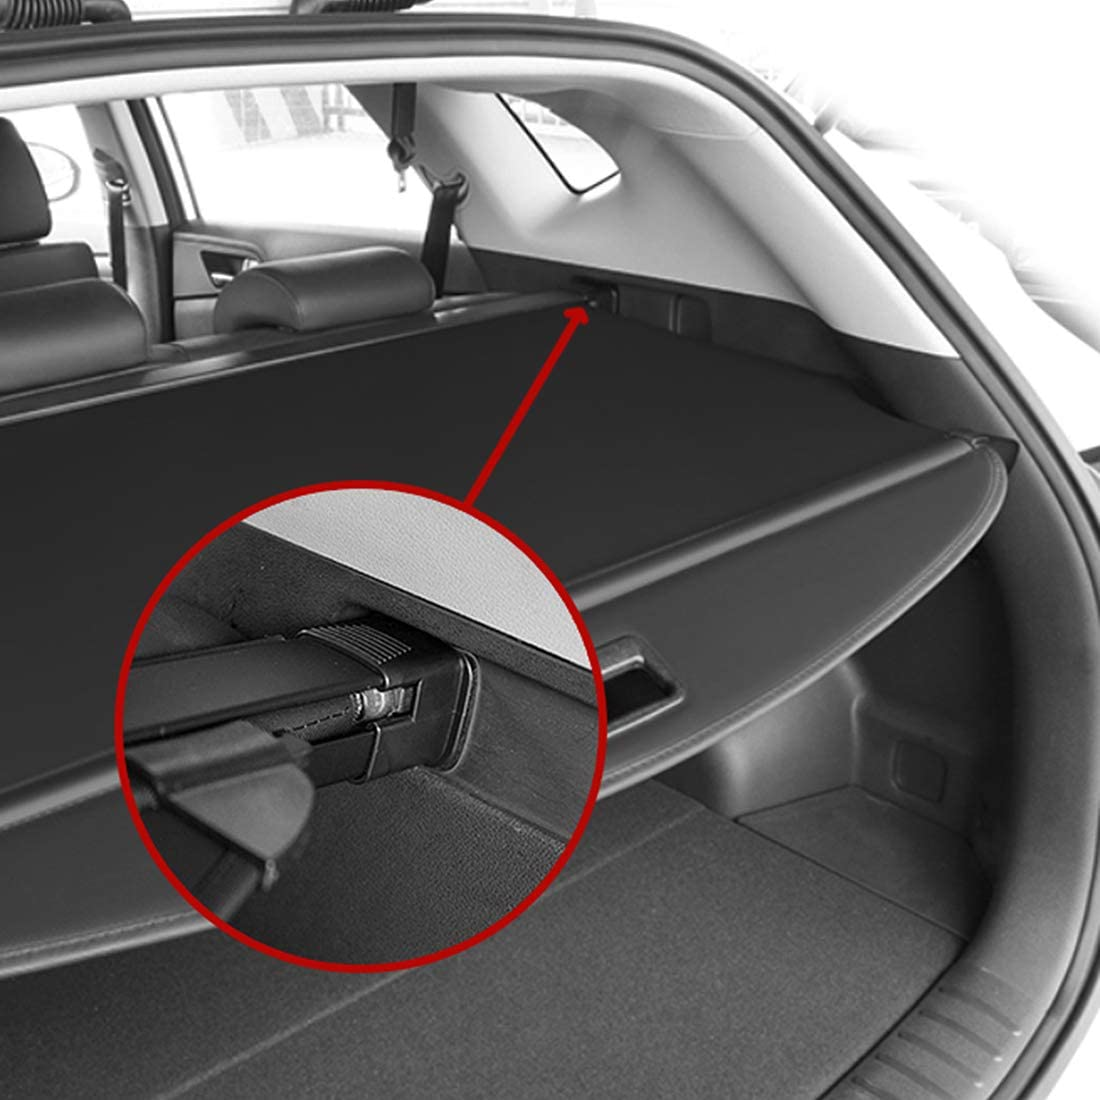 OREALTOOL Black Retractable Cargo Cover Luggage Shade Shield for Hyundai Tucson 2016 2017 2018 Rear Boot Trunk Parcel Load Shelf Shielding Security Panel Roller Blind